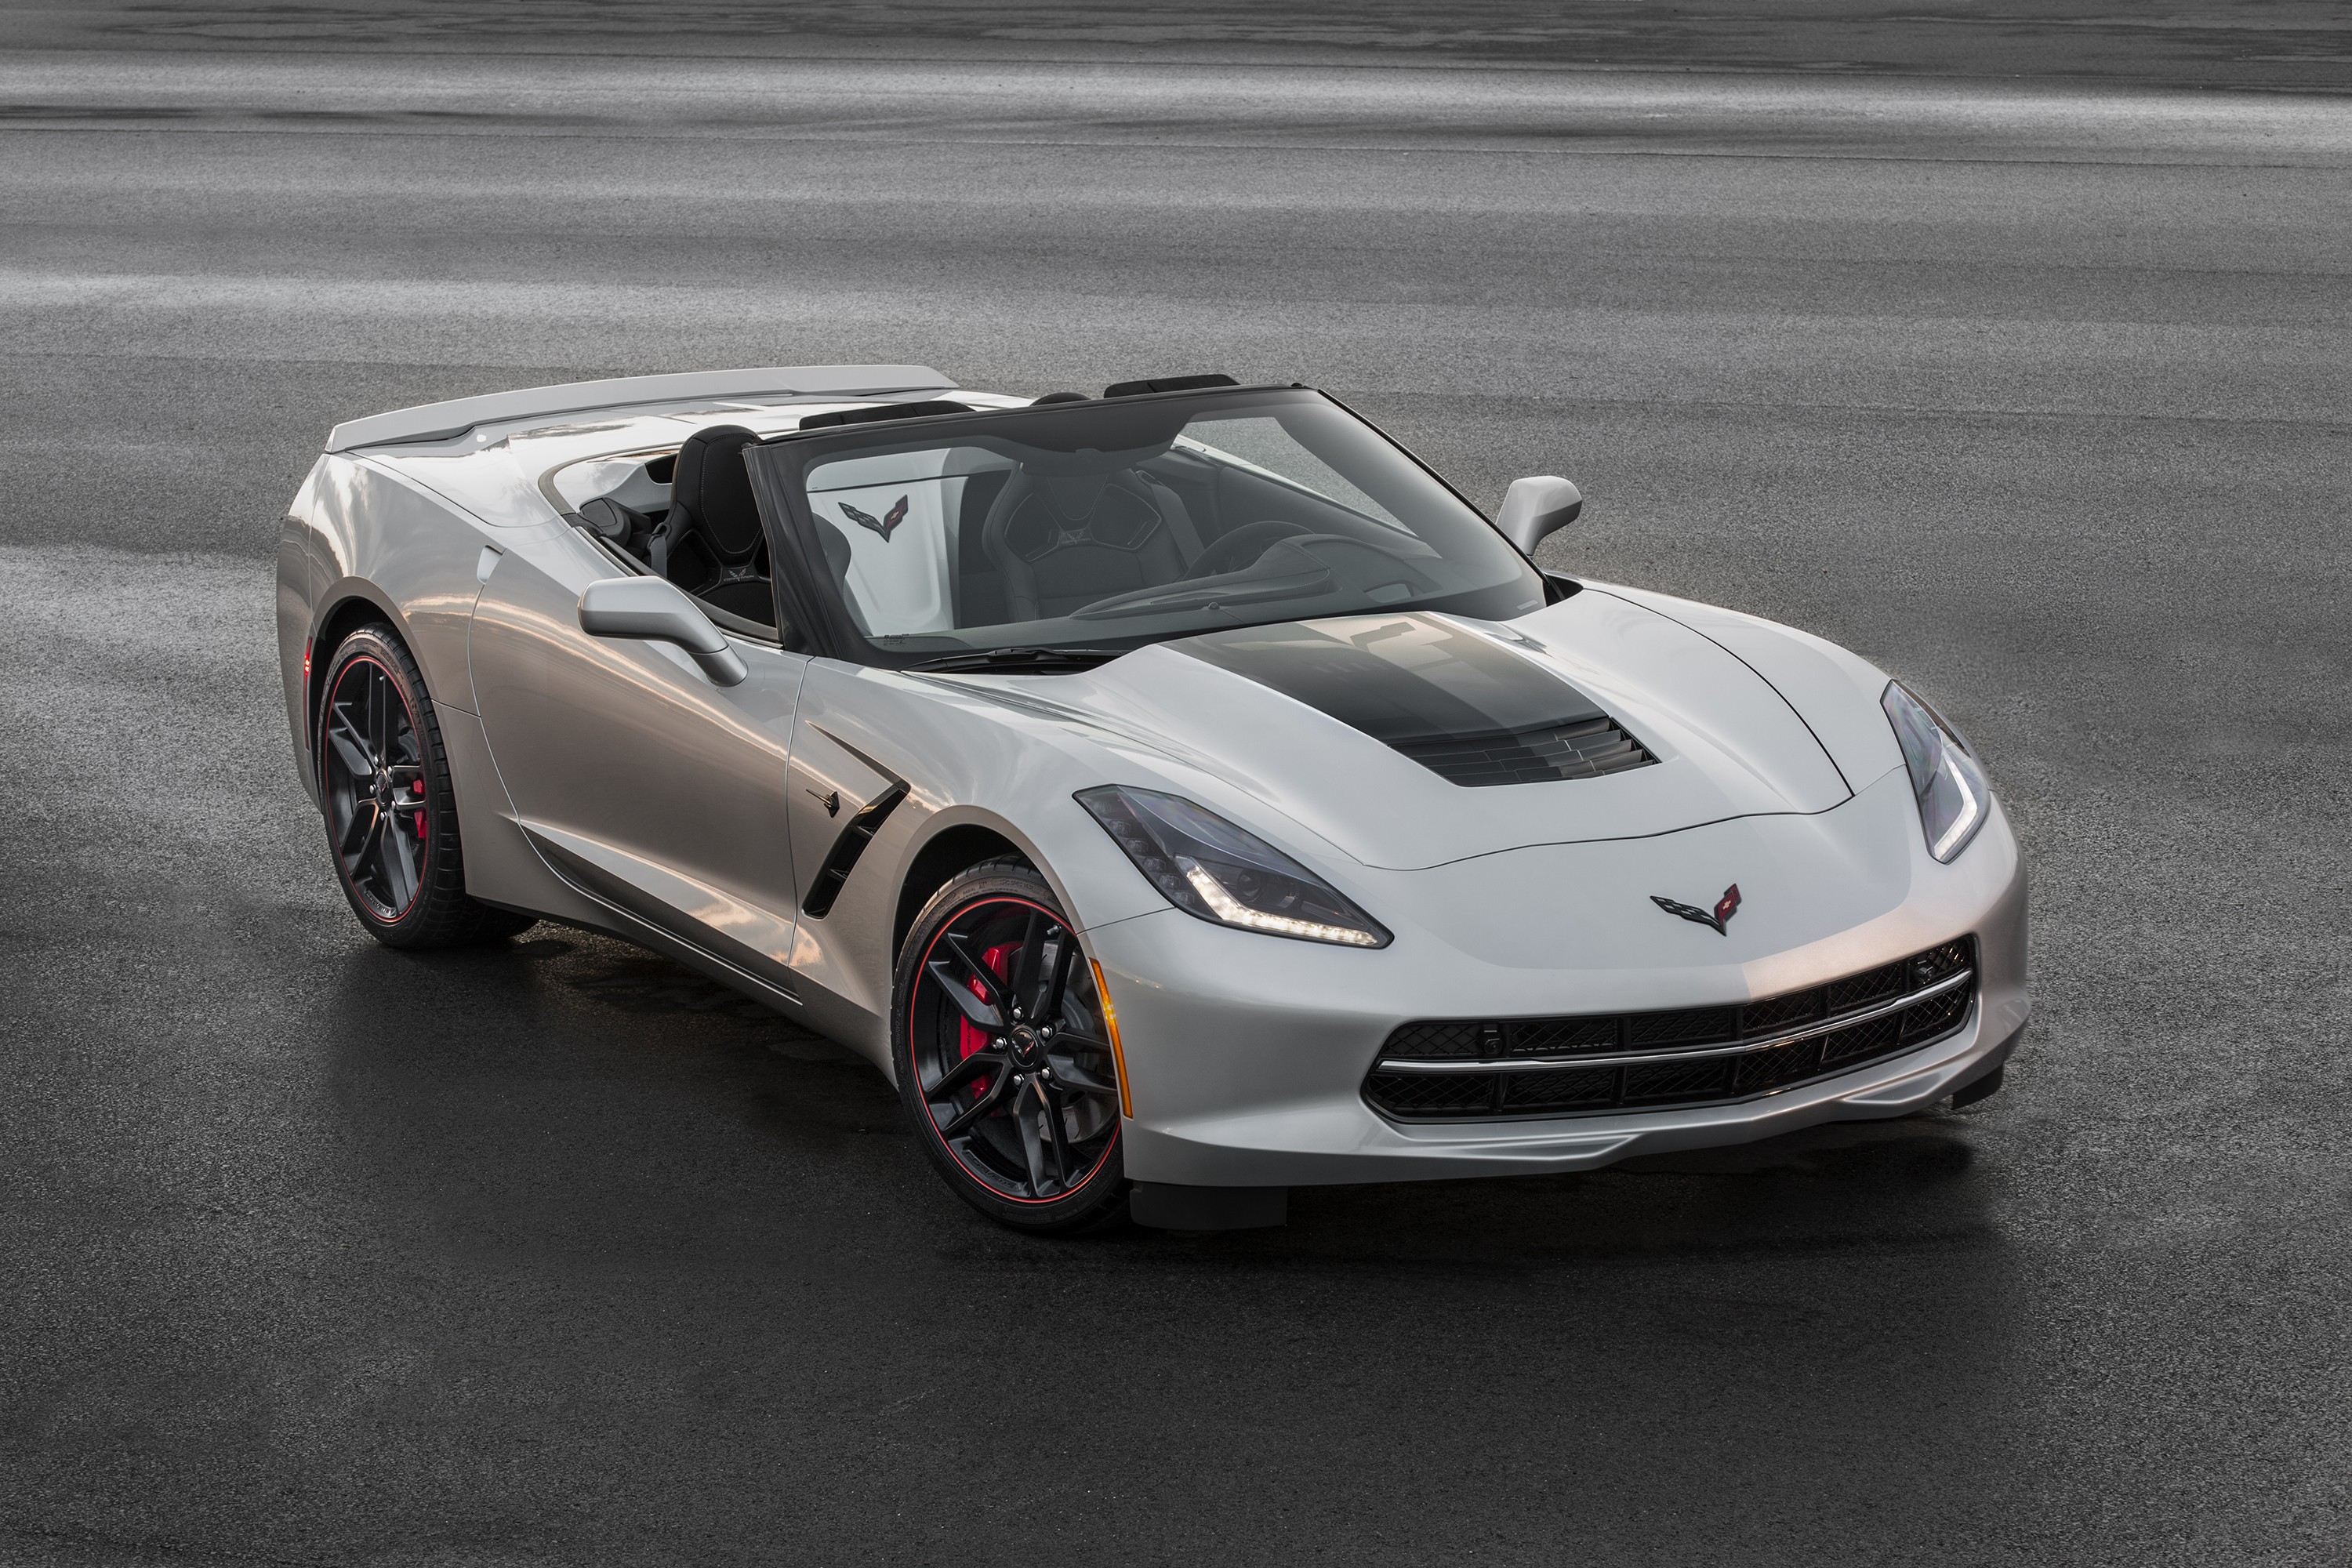 2016 corvette stingray brings small yet effective updates autoevolution. Black Bedroom Furniture Sets. Home Design Ideas